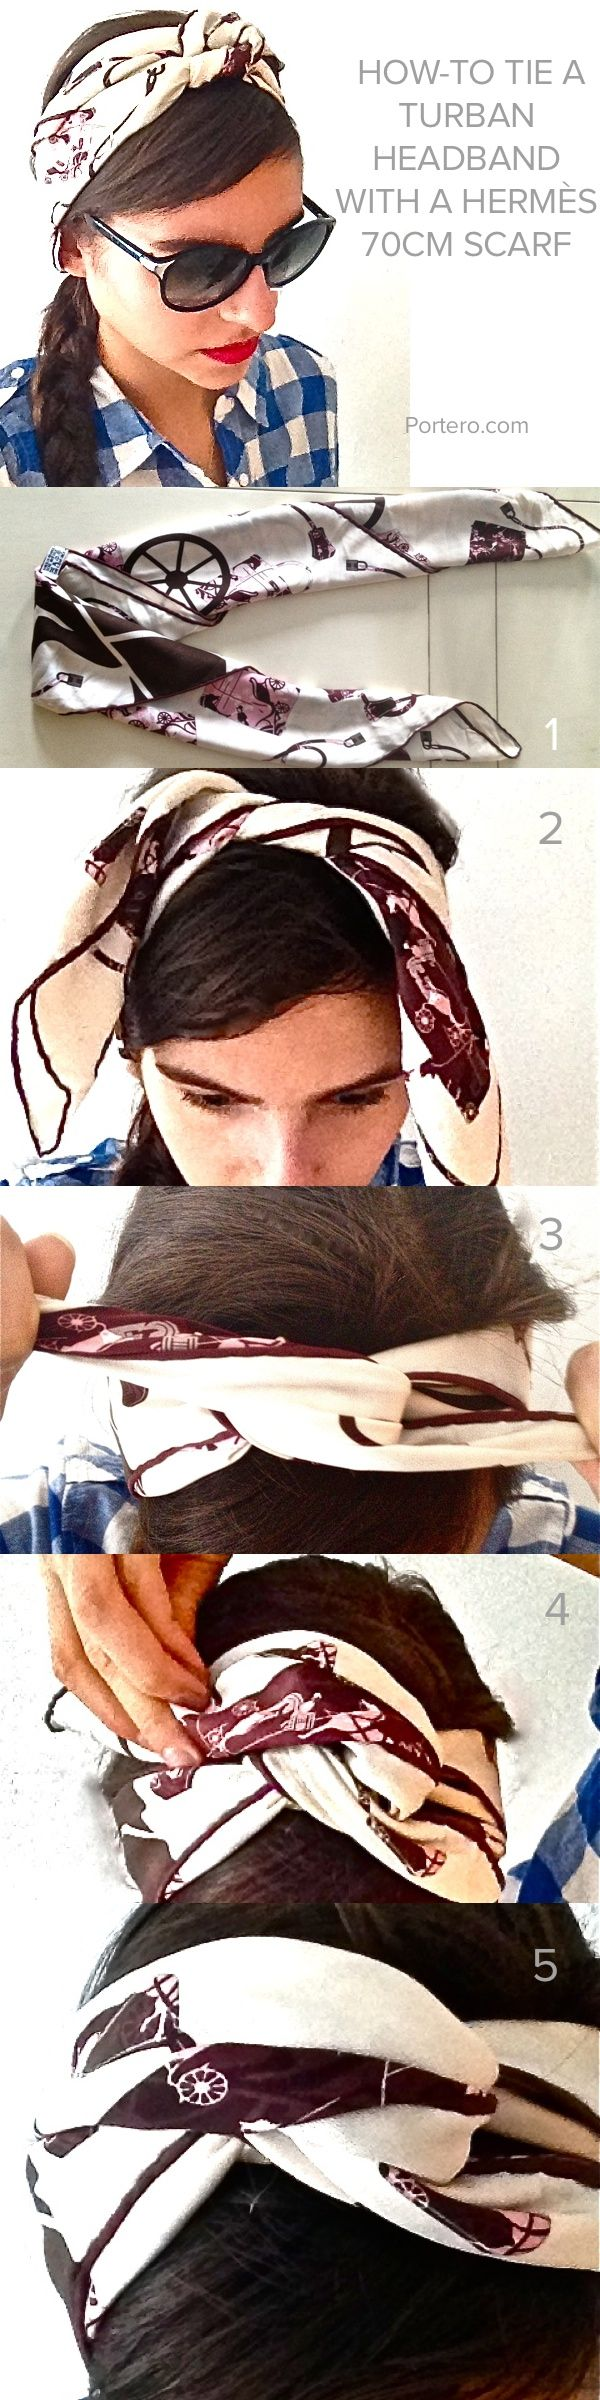 how to tie a scarf into a turban